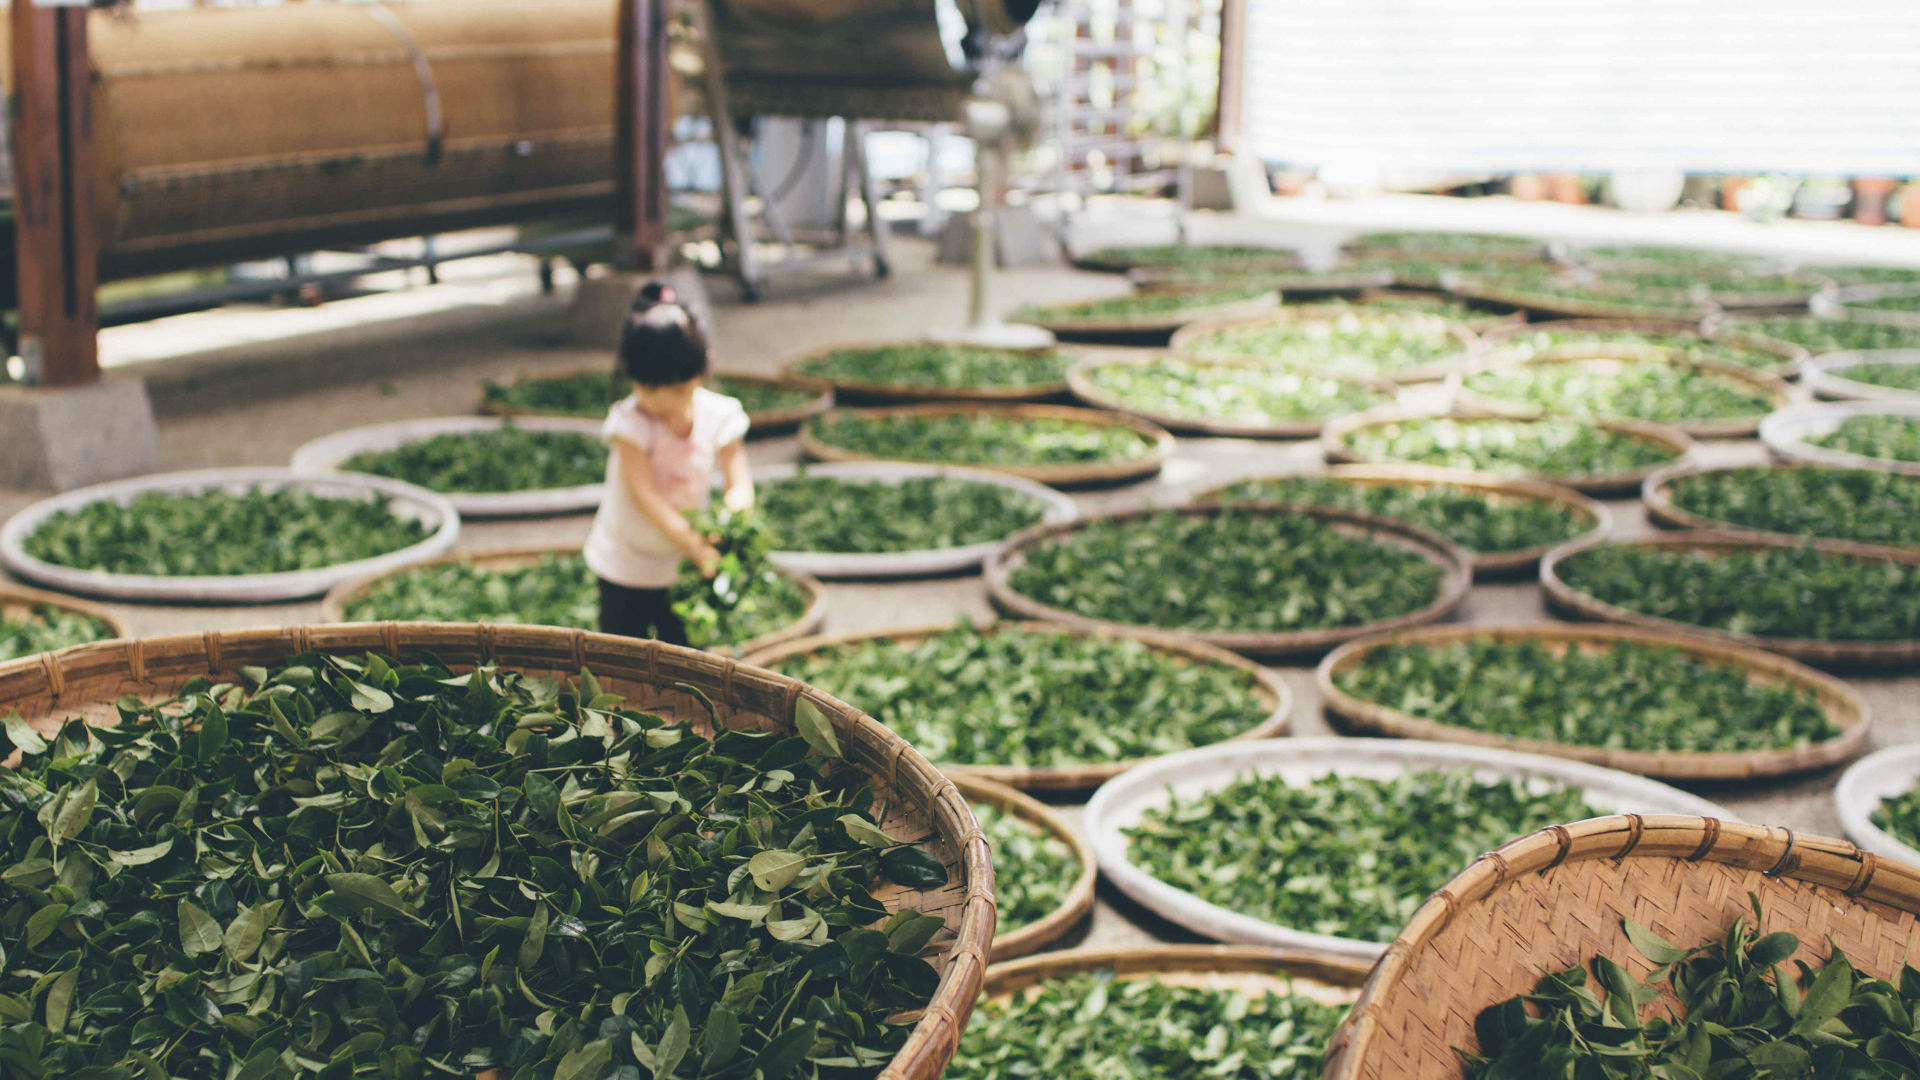 Drying tea leaves. Photo credit: 蔡 嘉宇 on Unsplash.